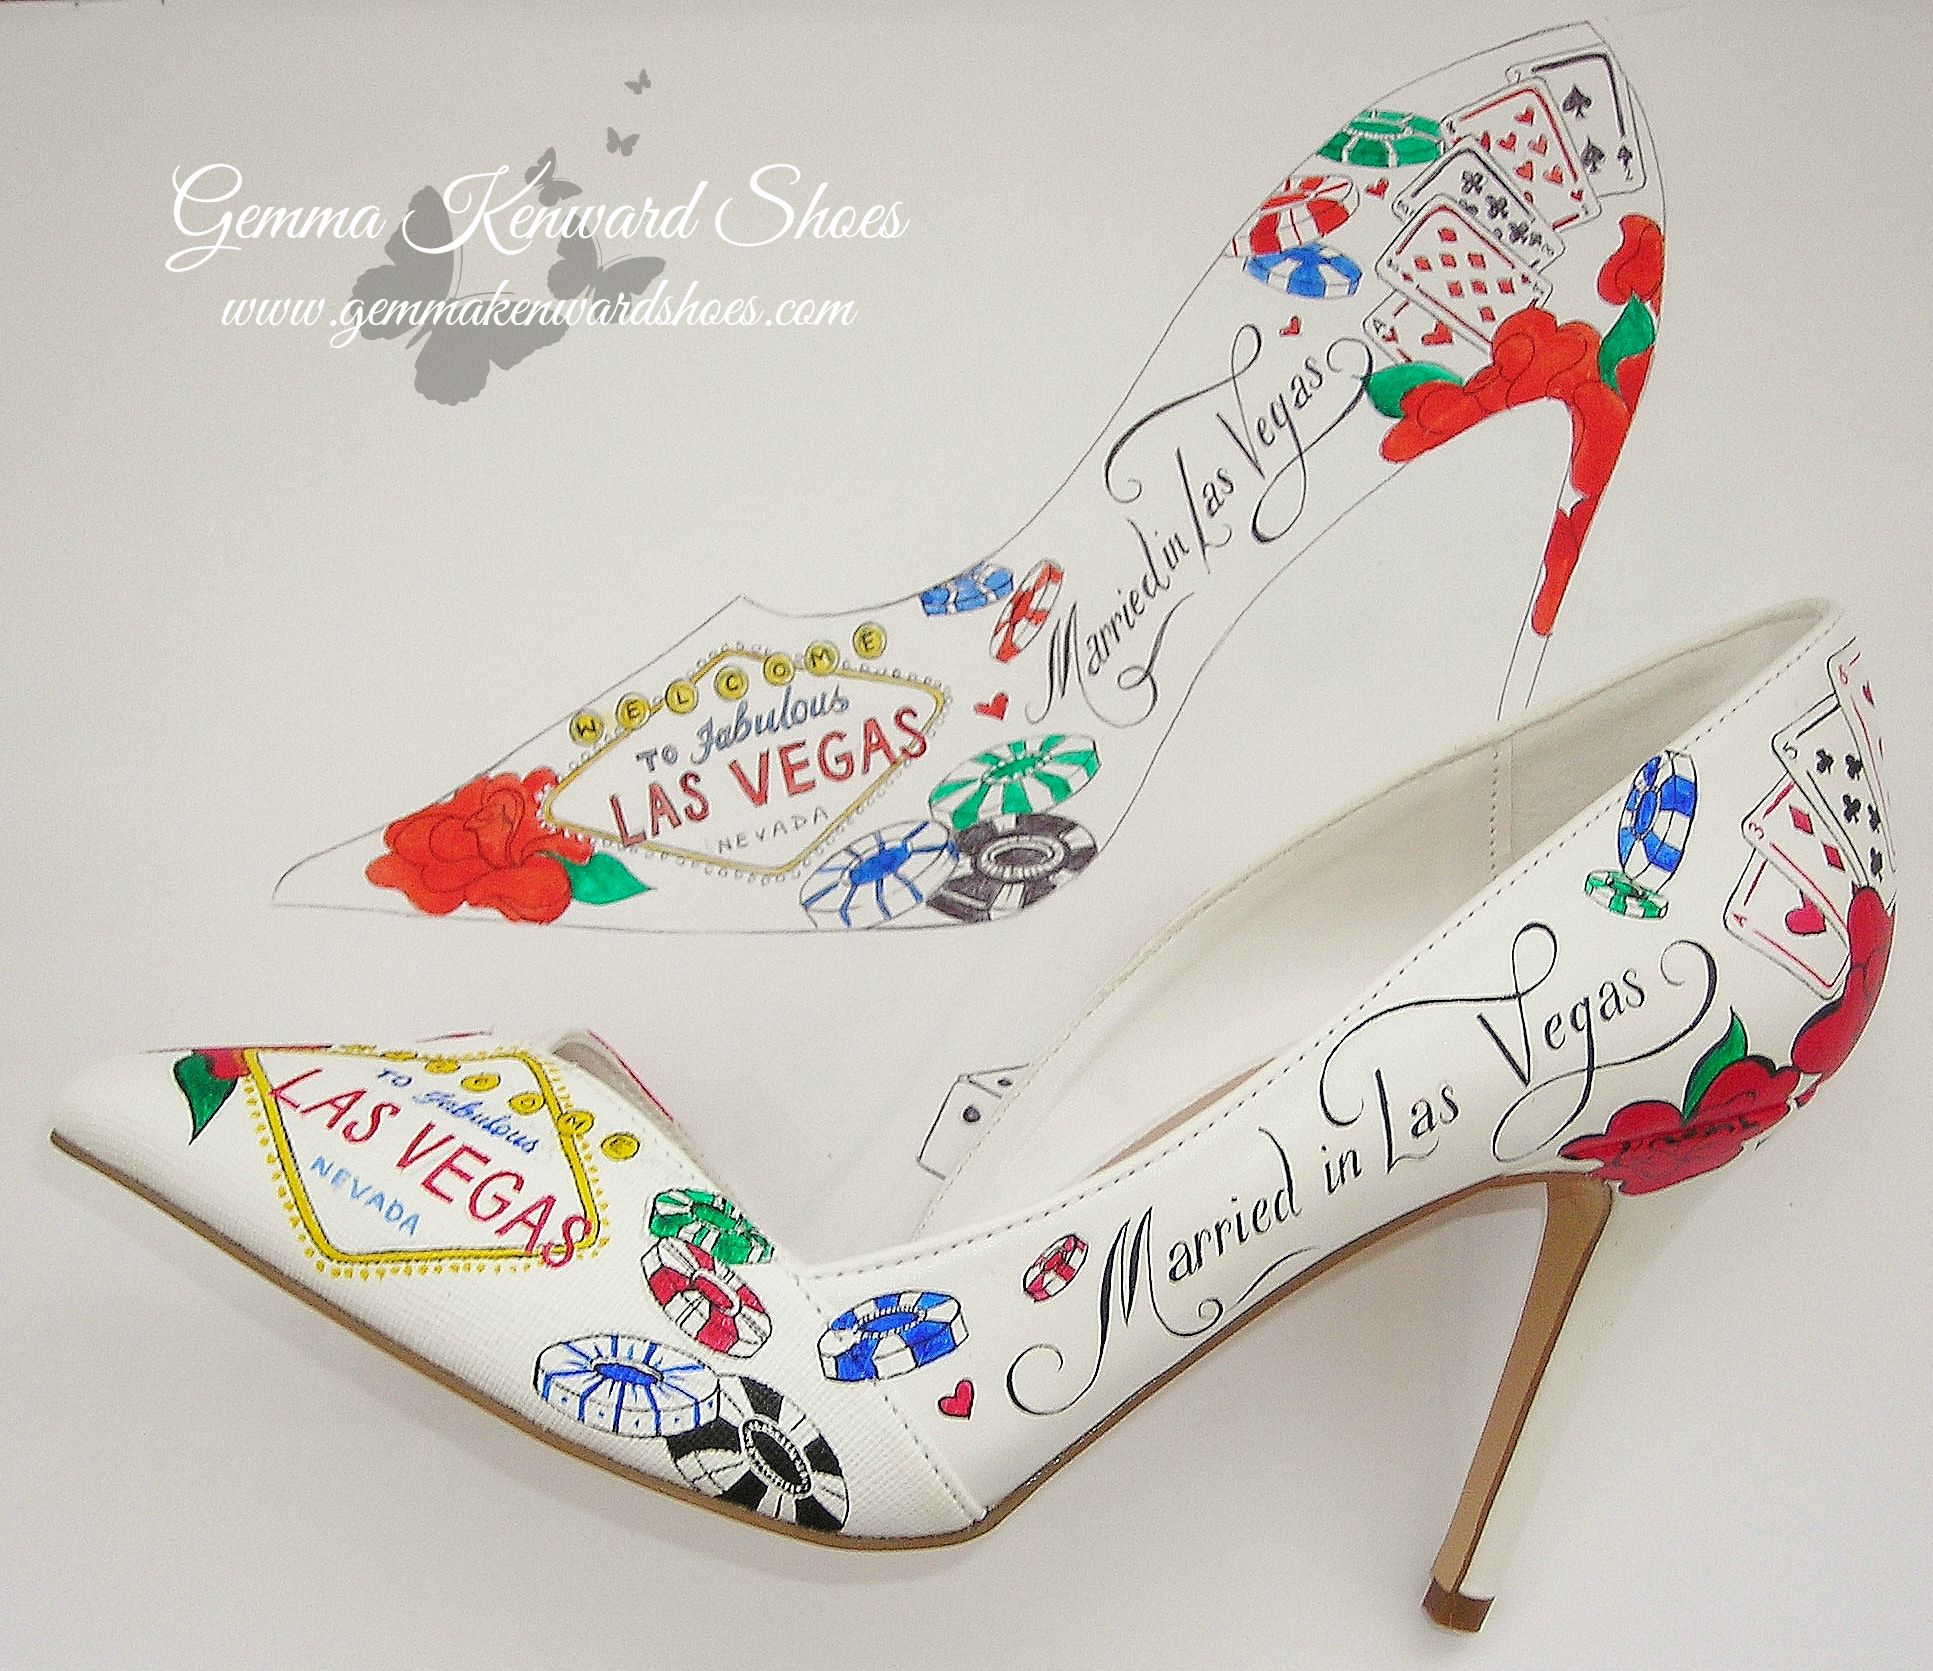 From draft to fruition! Hand Painted bridal shoes, bespoke and fabulously personal to our rocking bride